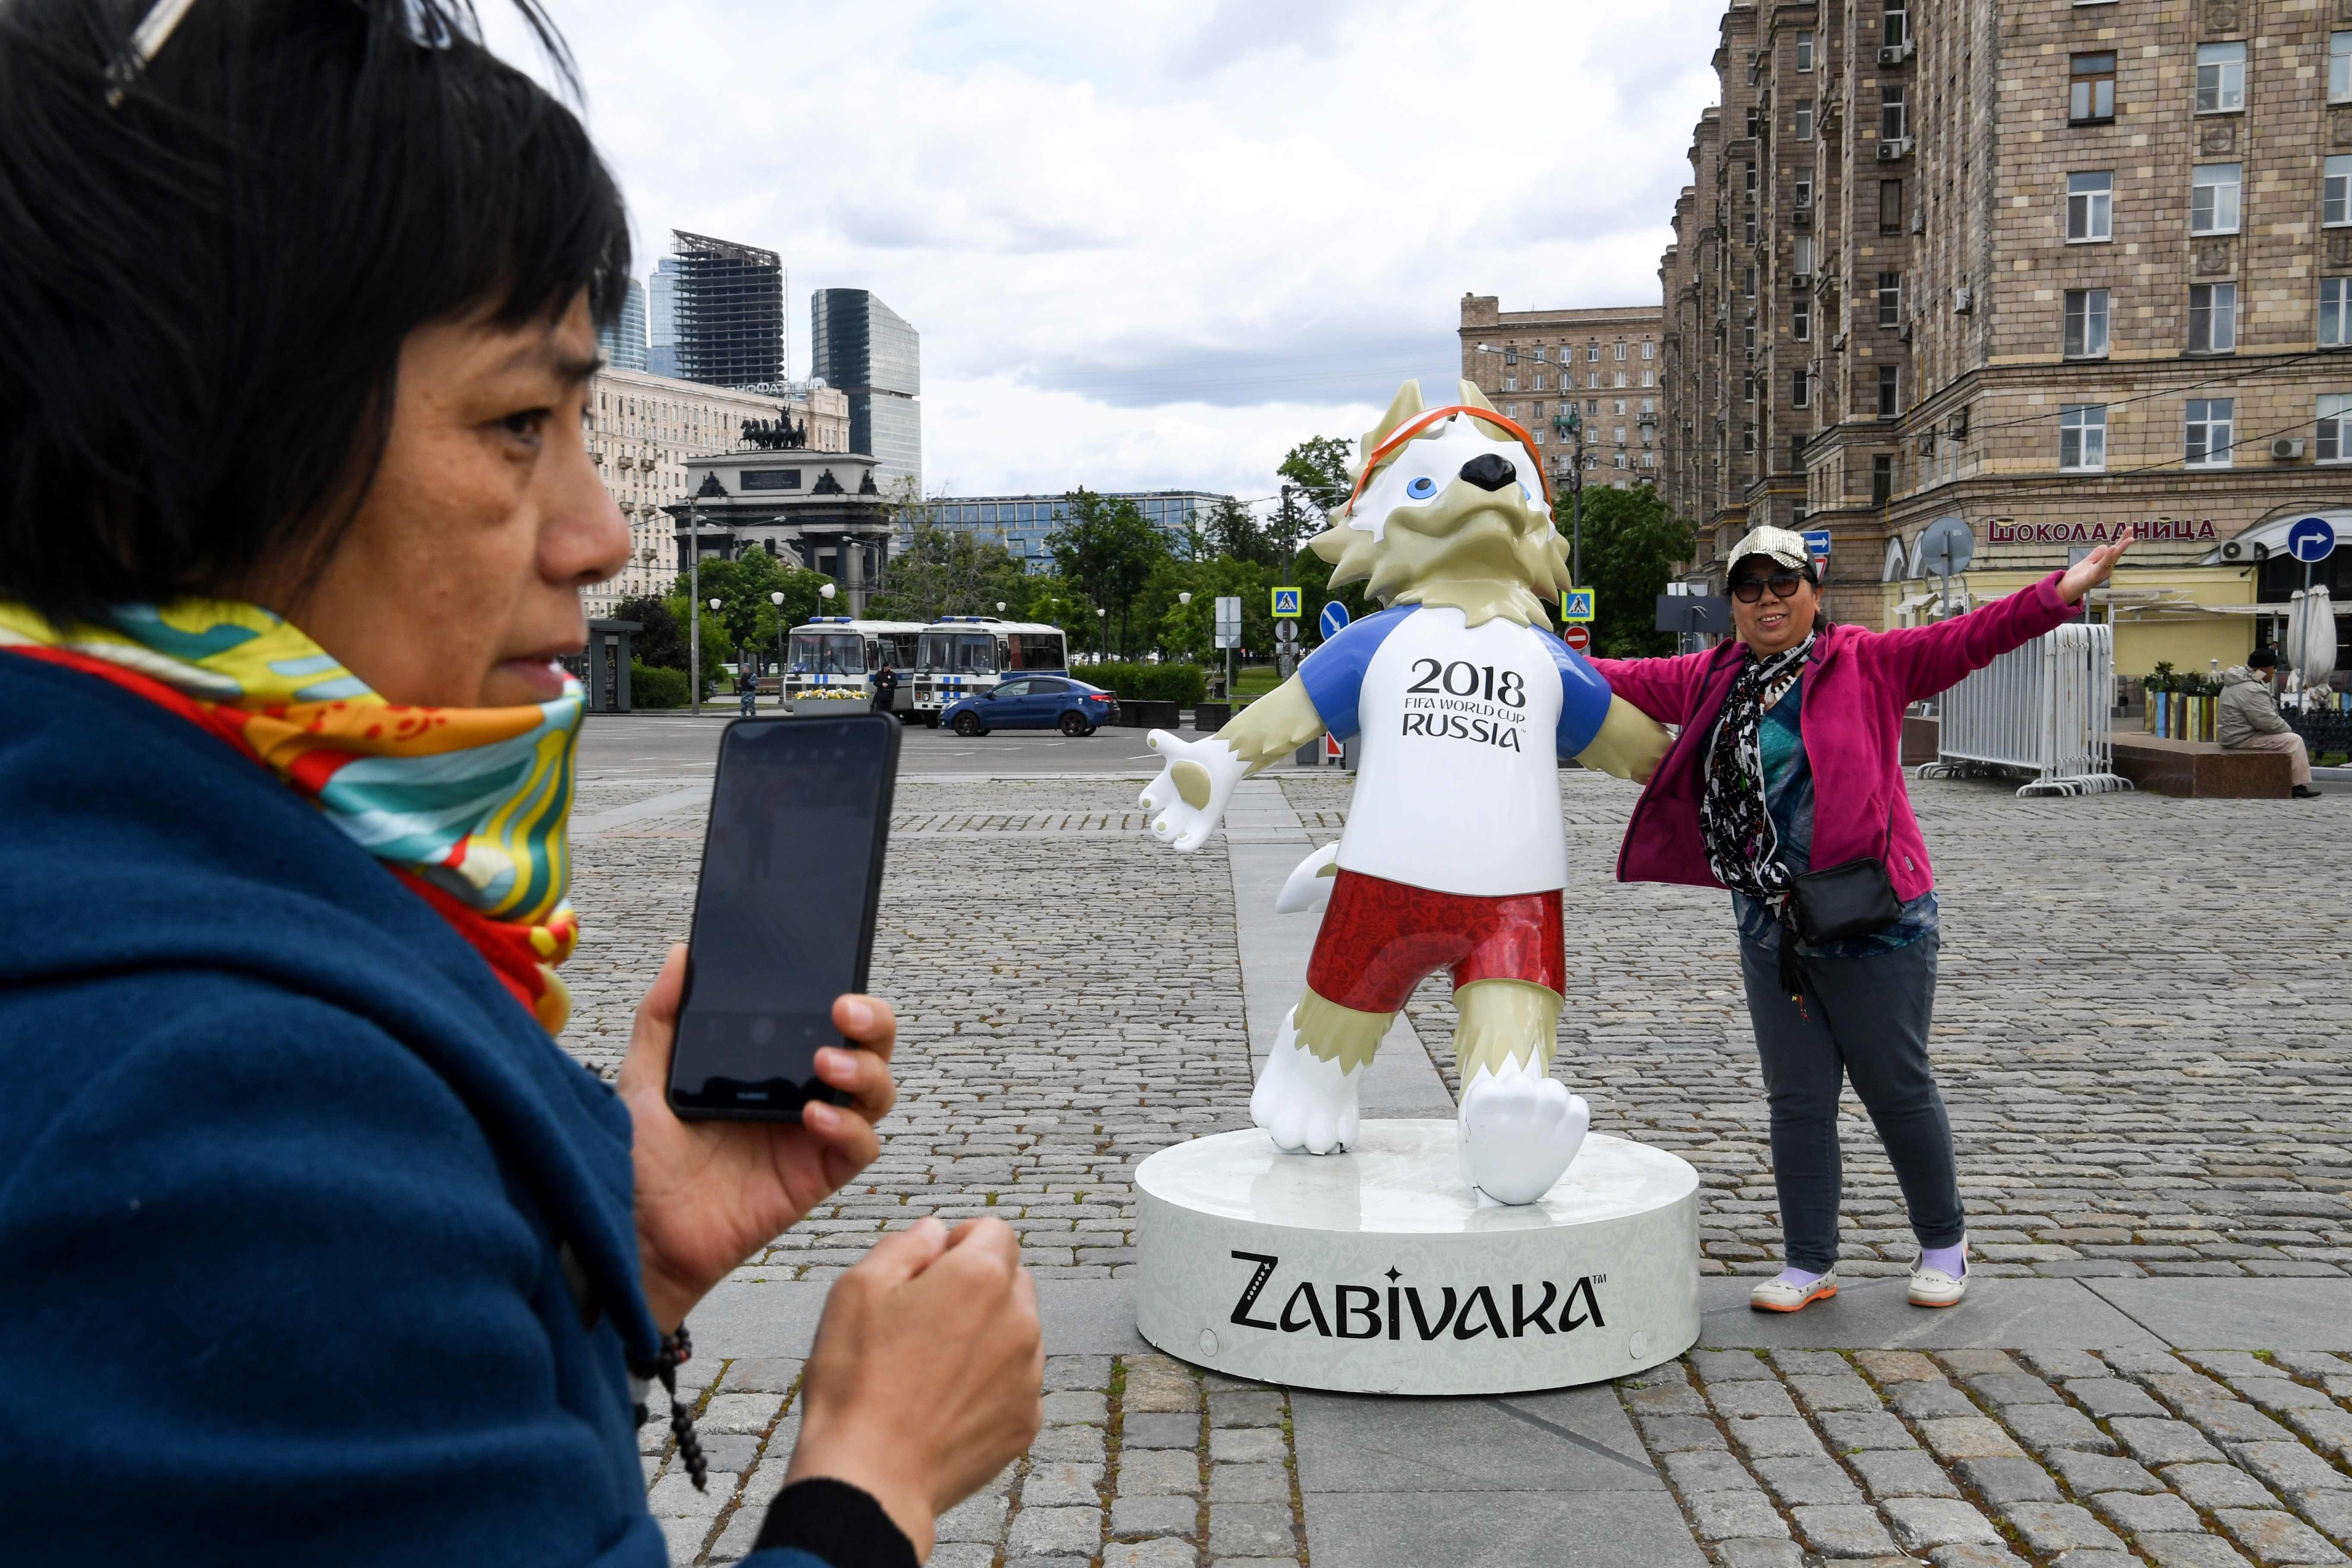 Russian tourists will pay extra 38